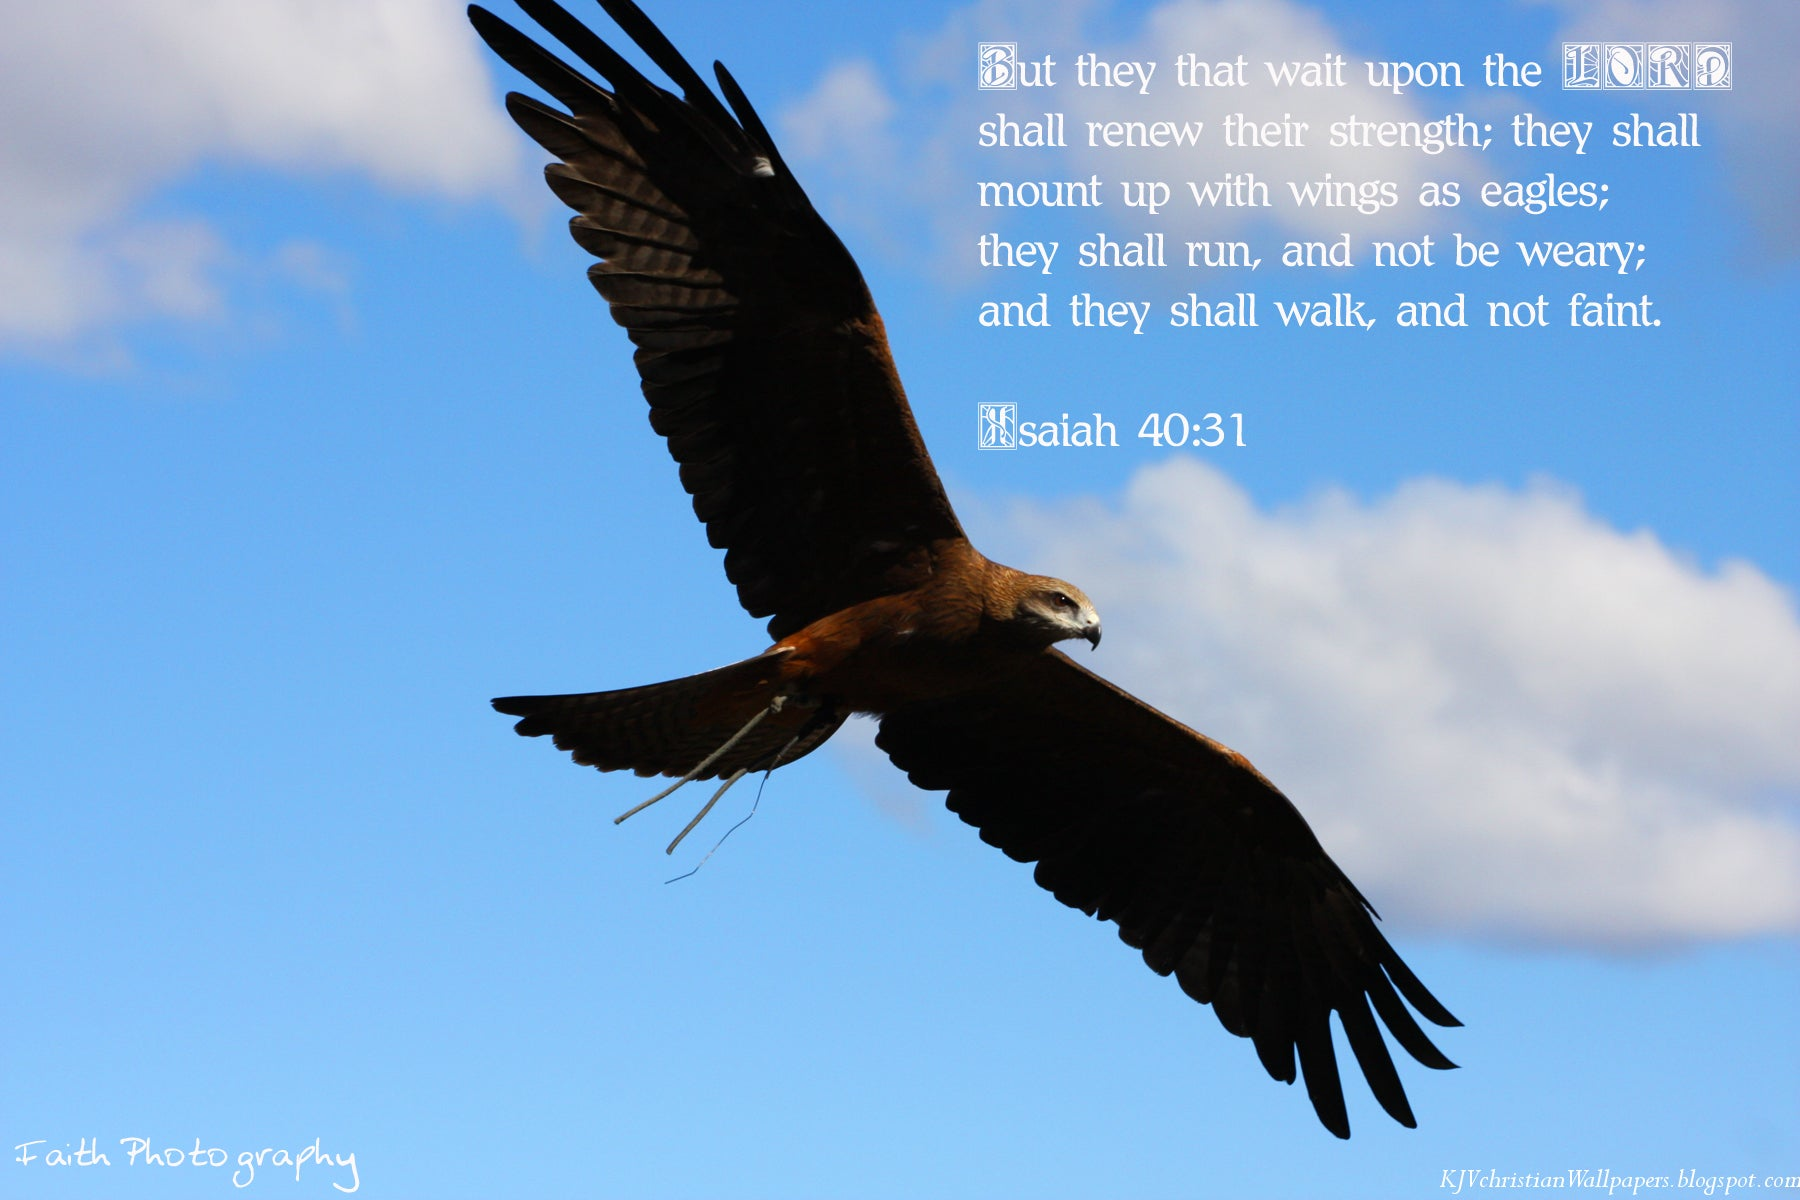 Isaiah 40:31 Commentaries: Yet those who wait for the LORD ...